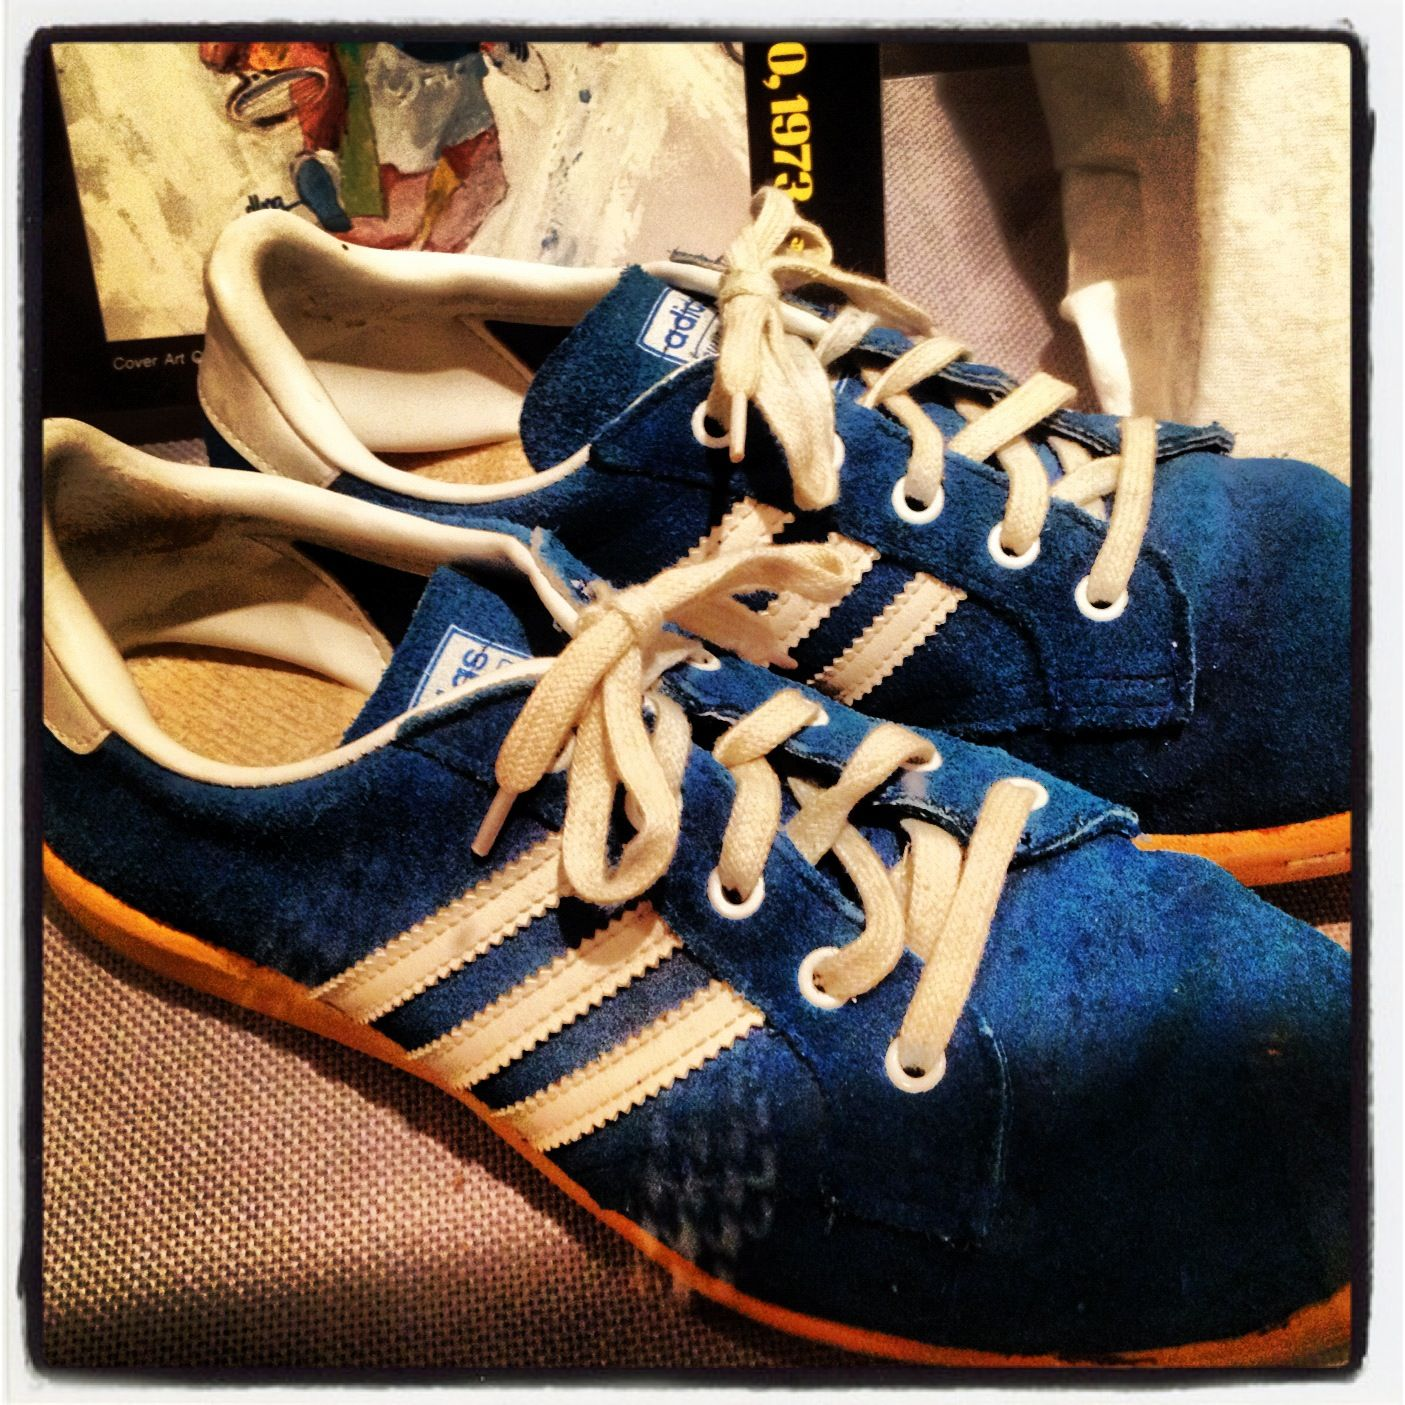 International Tennis Hall of Fame Treasures: Billie Jean King's adidas shoes  from 1973 Battle of